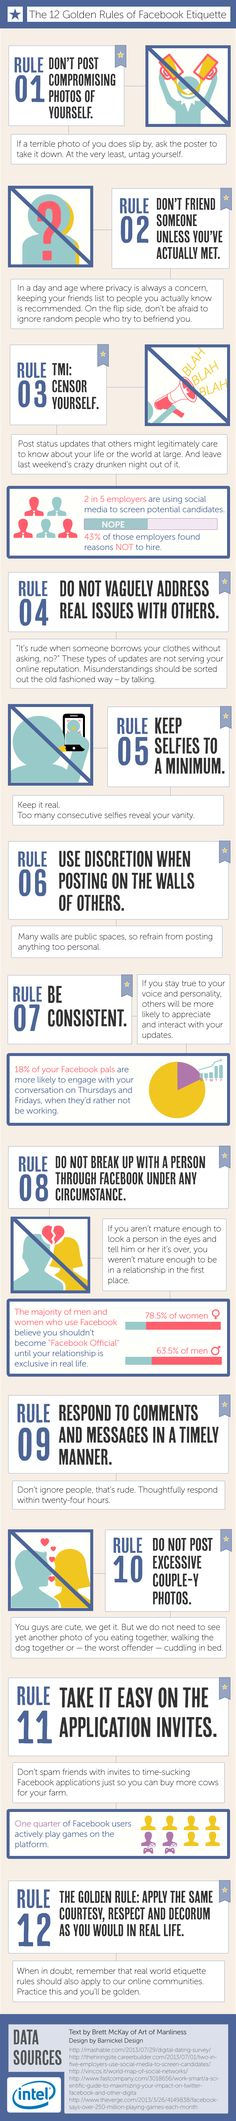 The 12 Rules Of Facebook Etiquette